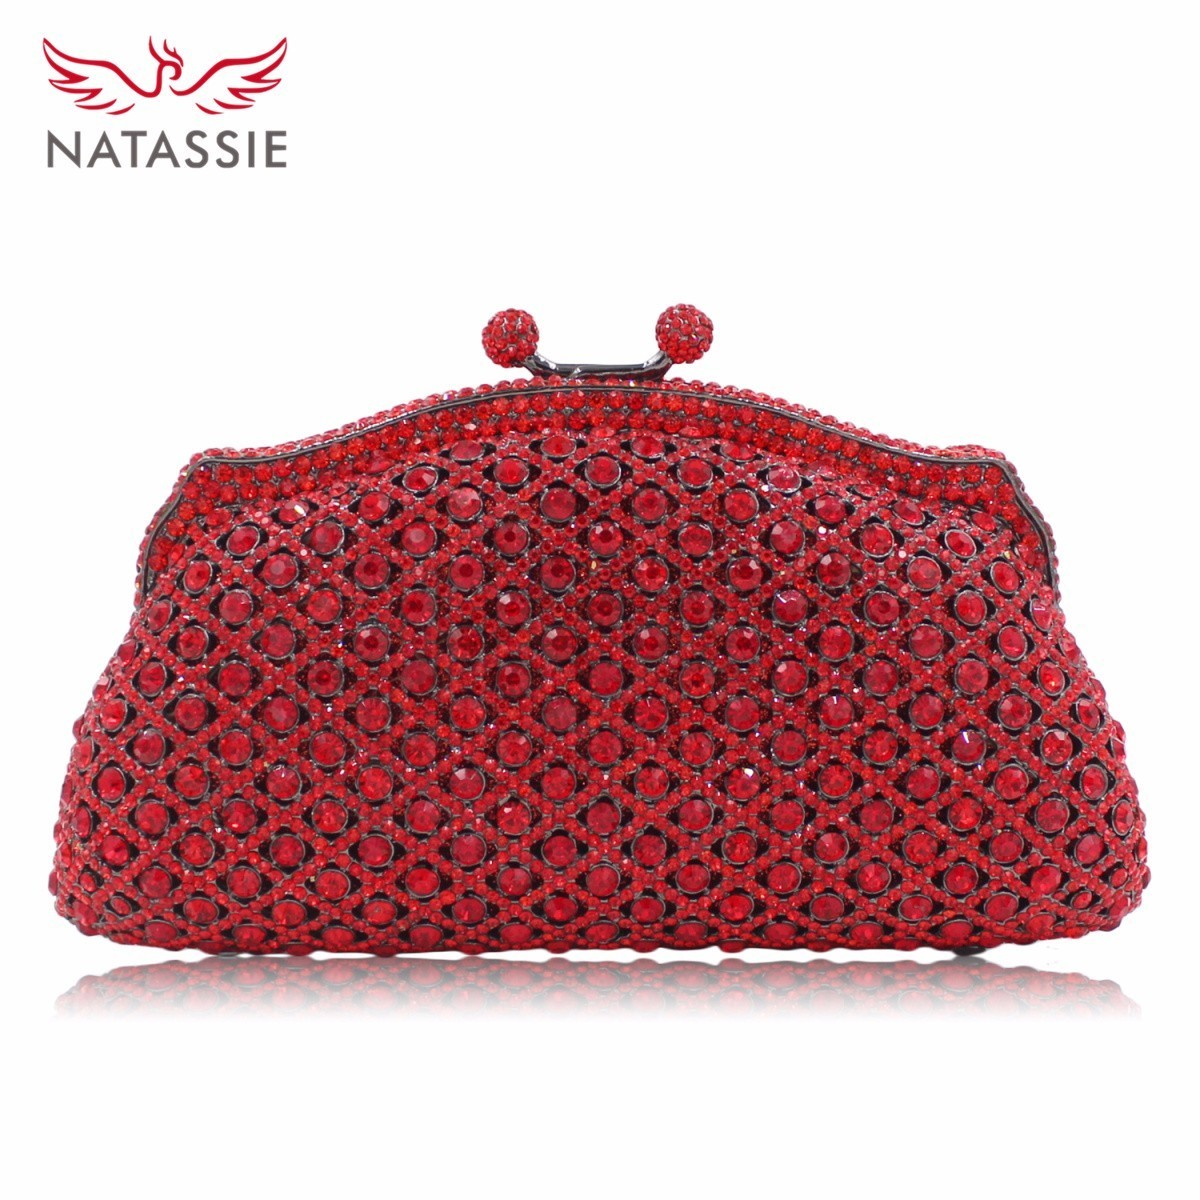 NATASSIE New Women Evening Bag Luxury Diamonds Handbag Wedding Crystal Clutch Bags Party Leather Purse natassie new design luxury crystal clutch women evening bag gold red ladies wedding banquet party purses good quality